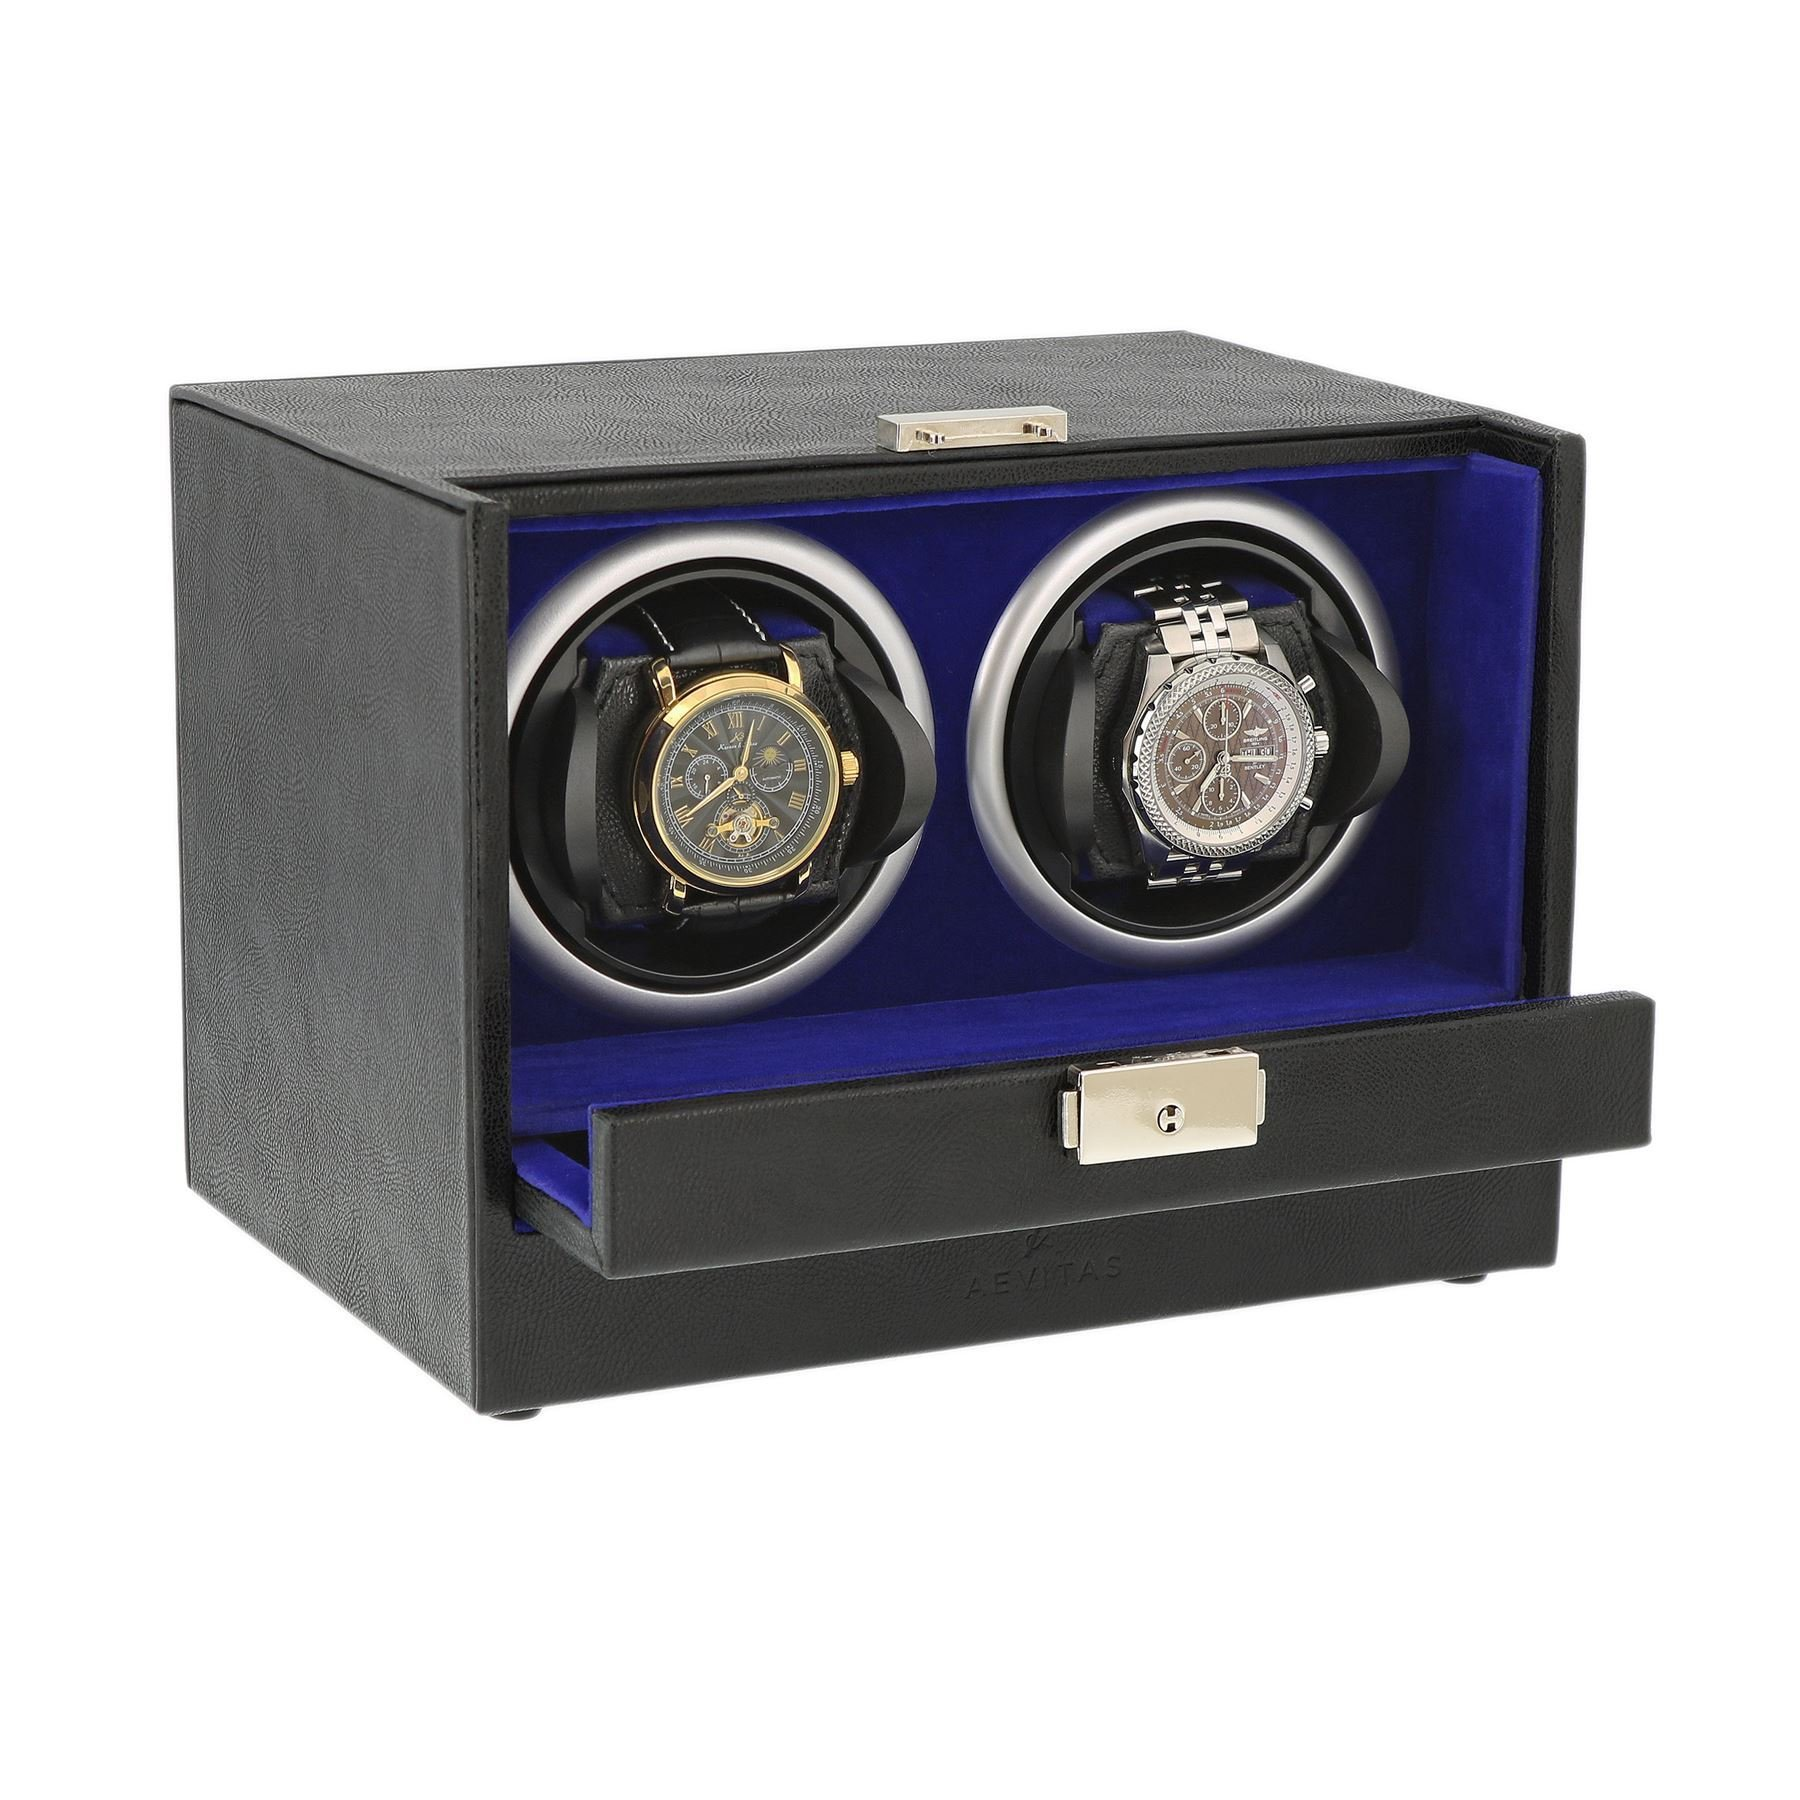 Black Genuine Leather Dual Watch Winder - Slide Away Door - Purple / Blue Velvet Lining by Aevitas